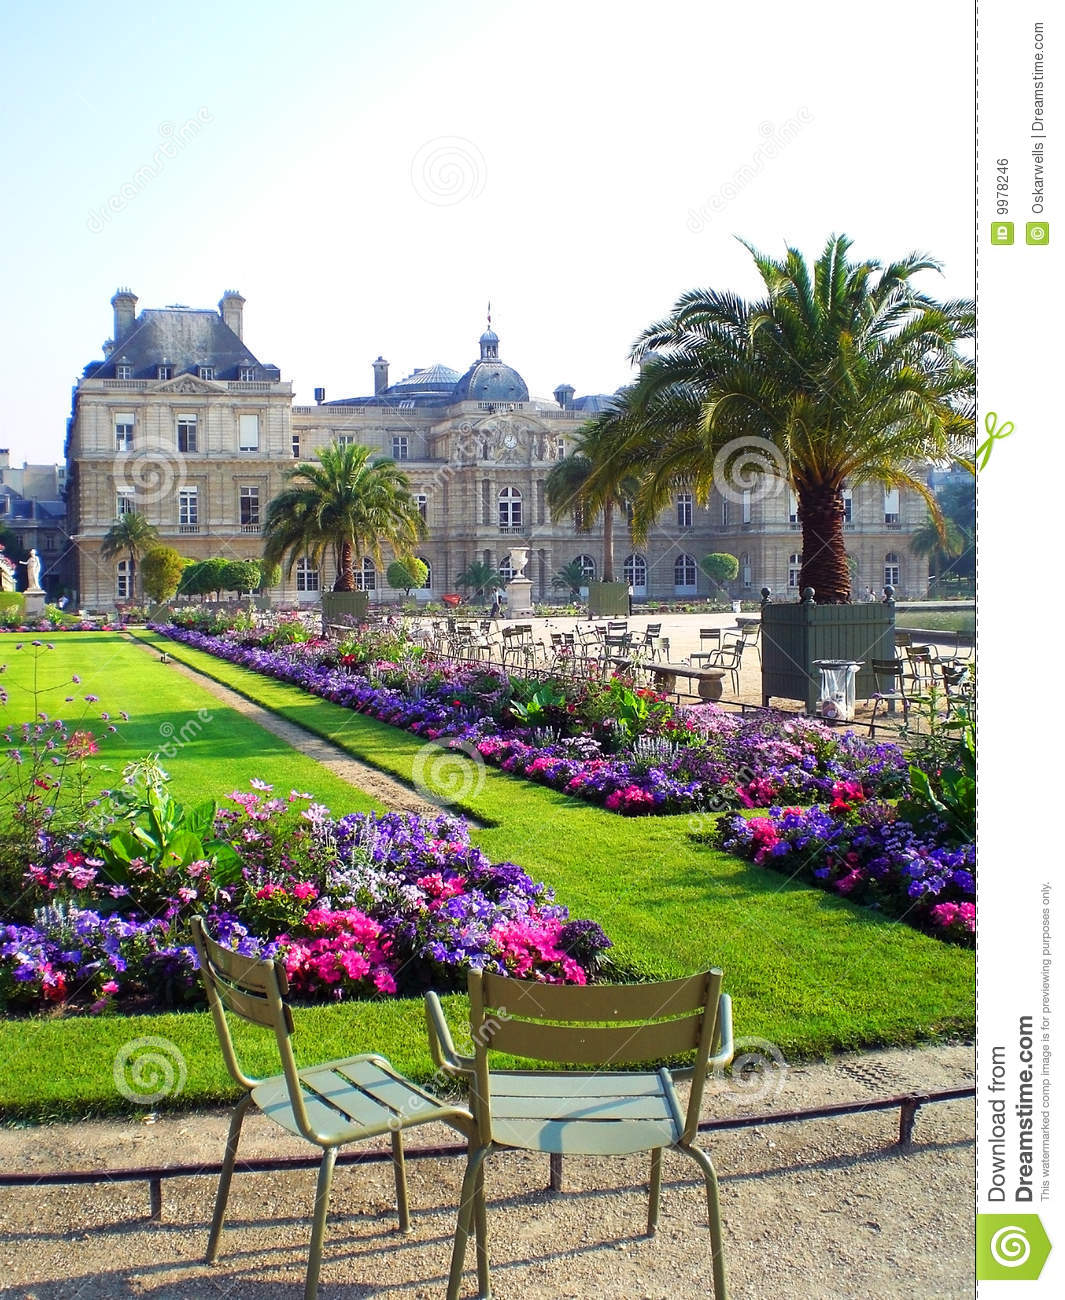 Jardin du luxembourg paris royalty free stock image for Cafe jardin du luxembourg